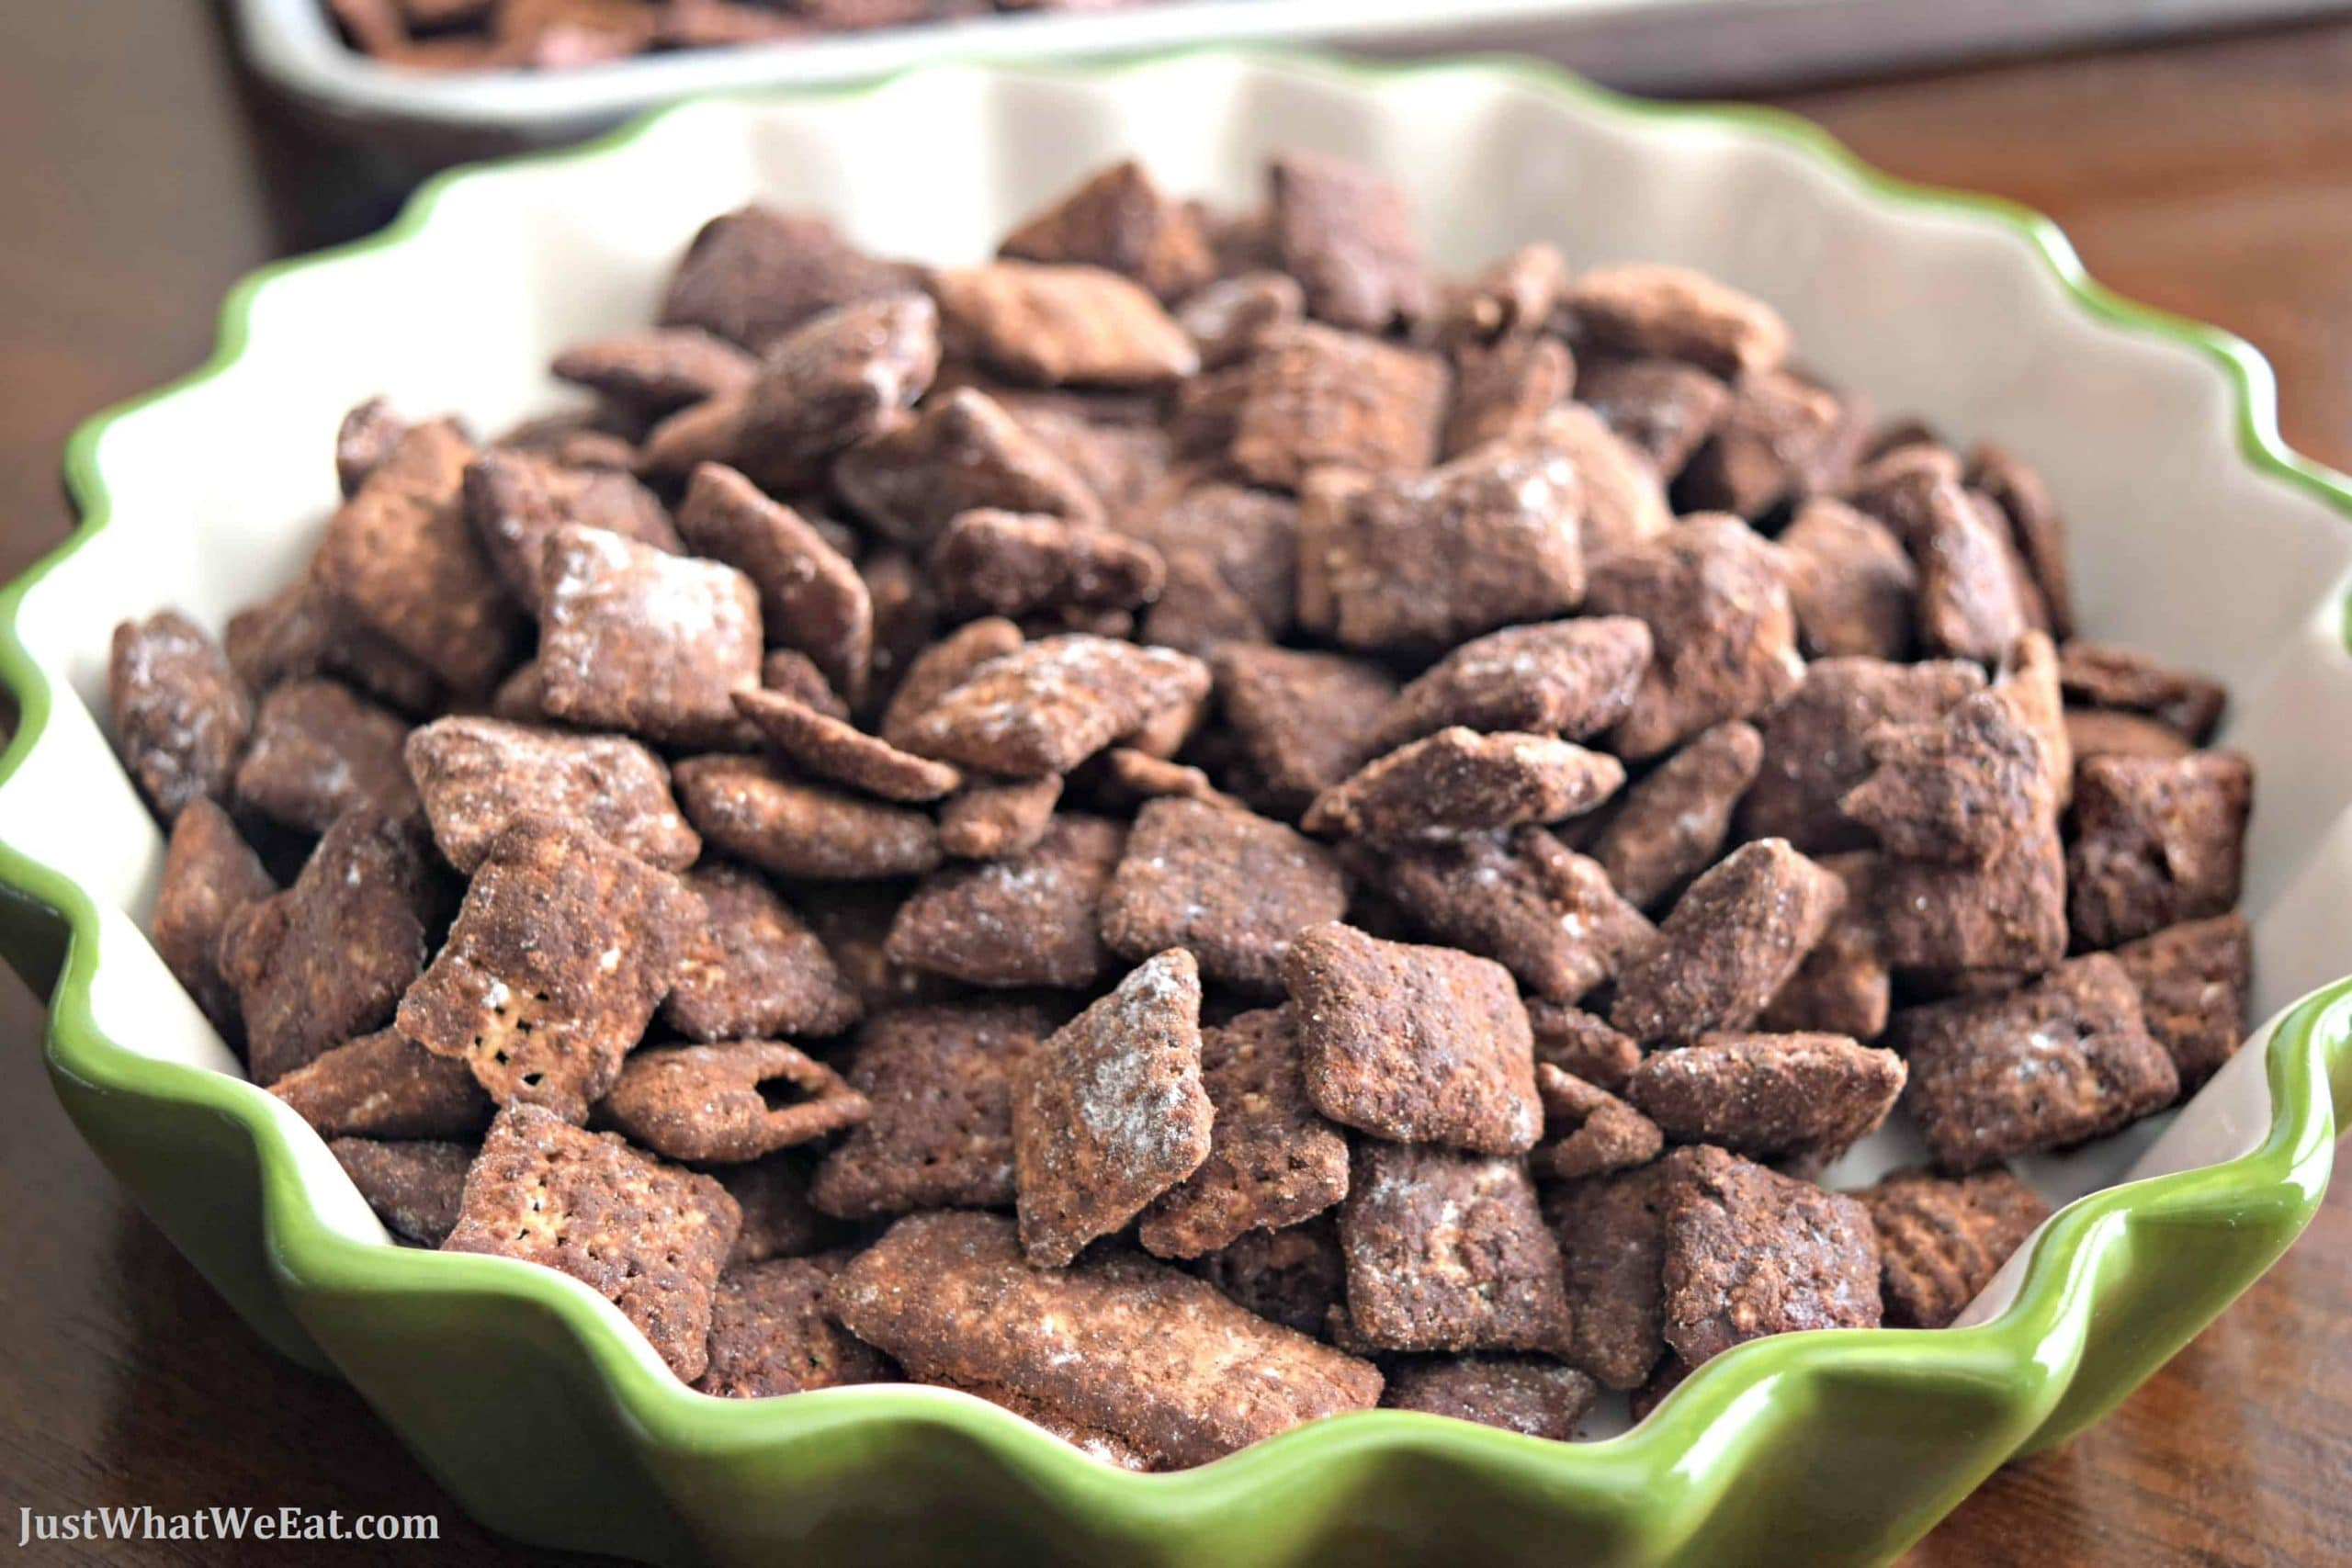 Cocoa Puppy Chow Gluten Free Vegan Just What We Eat